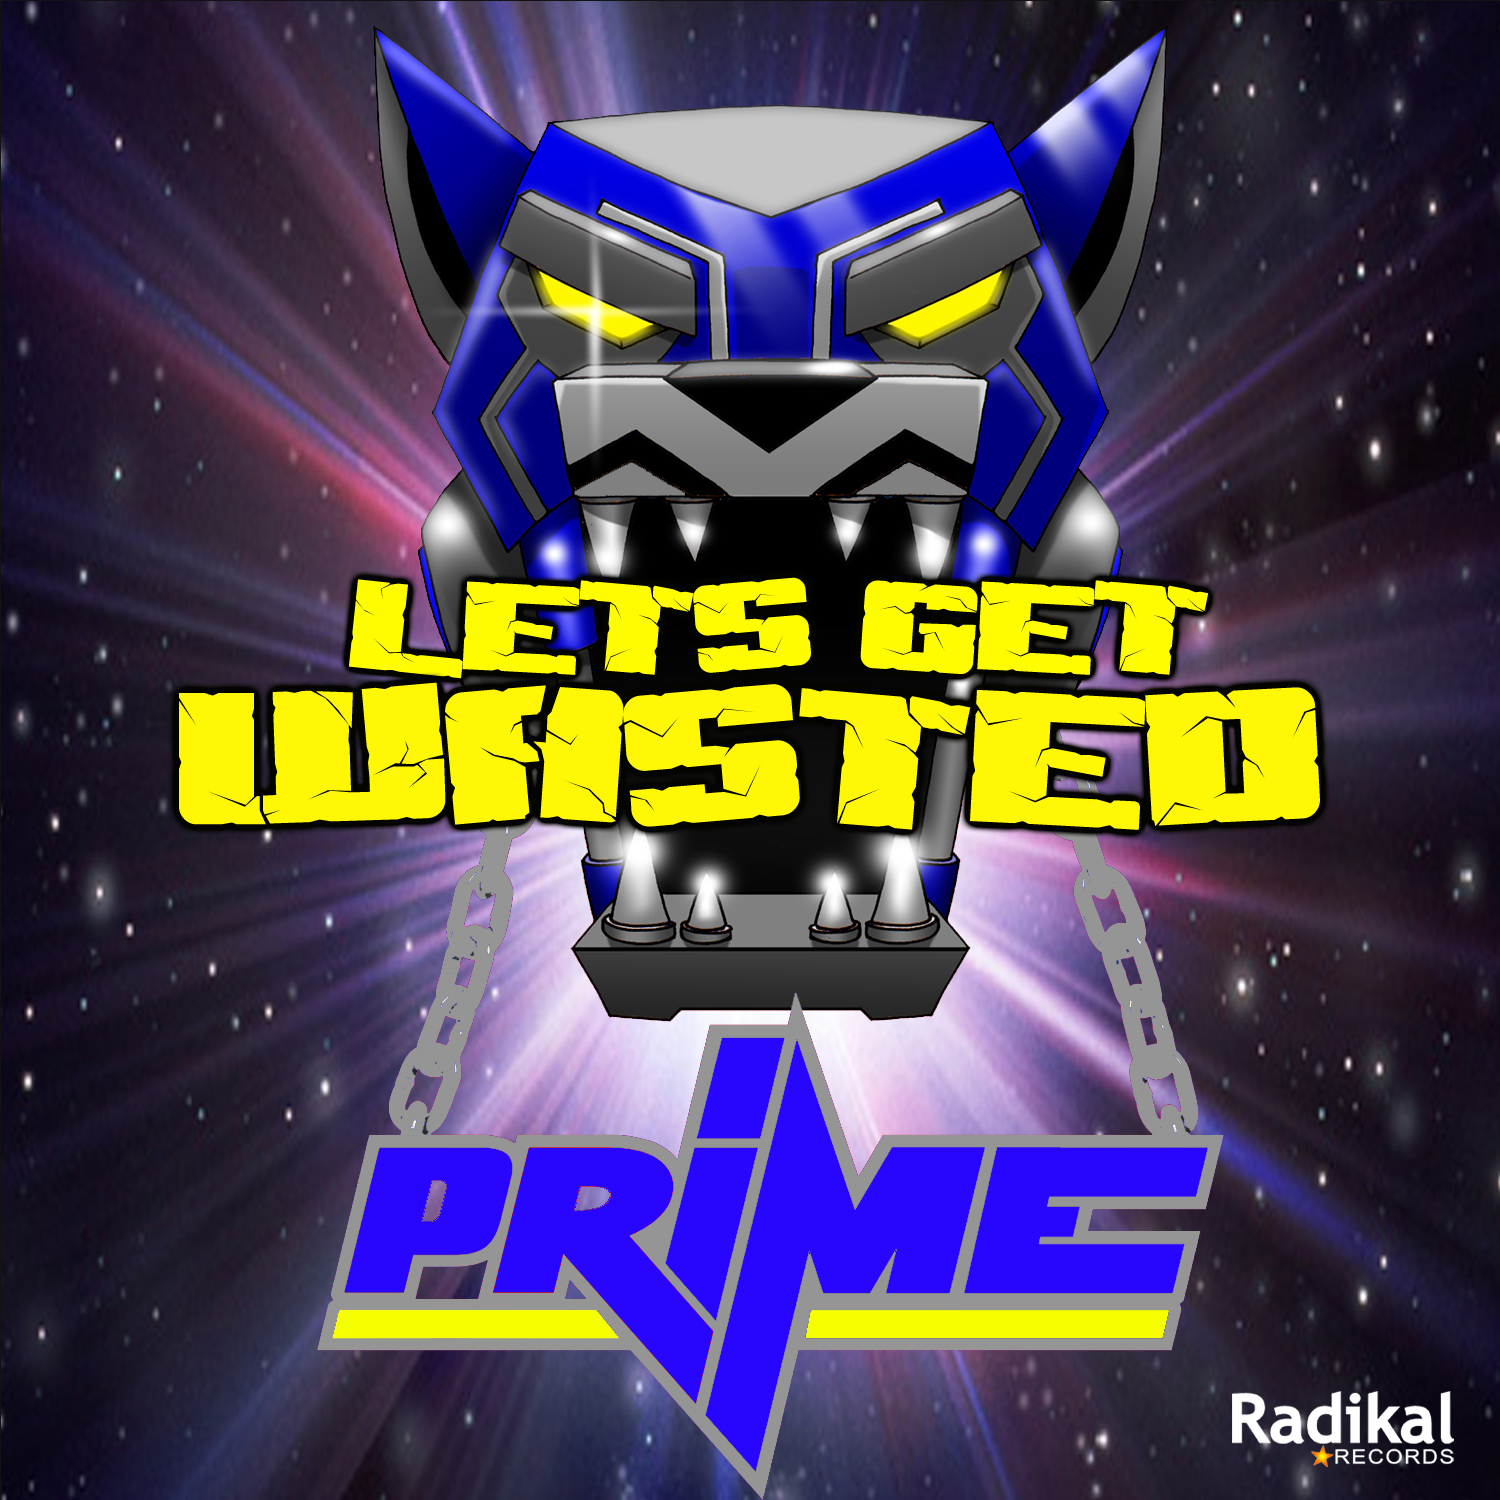 DJ Prime – Let's Get Wasted